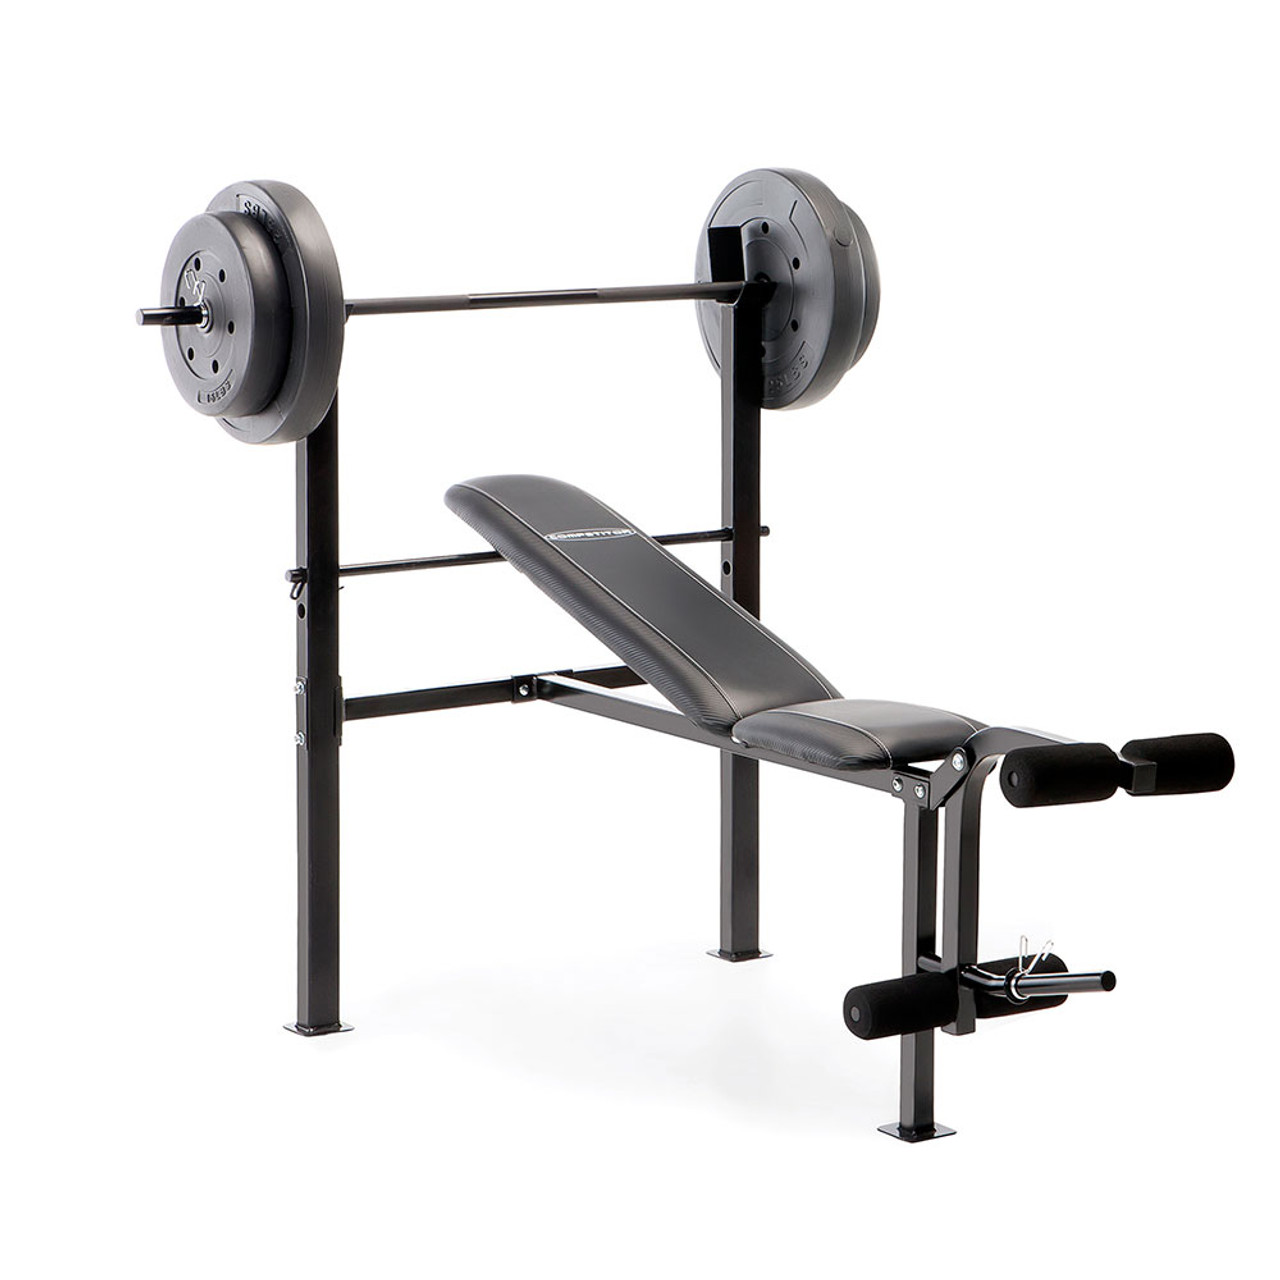 Sensational Standard Adjustable Bench With 80 Lb Weight Set Competitor Cb 20111 Alphanode Cool Chair Designs And Ideas Alphanodeonline